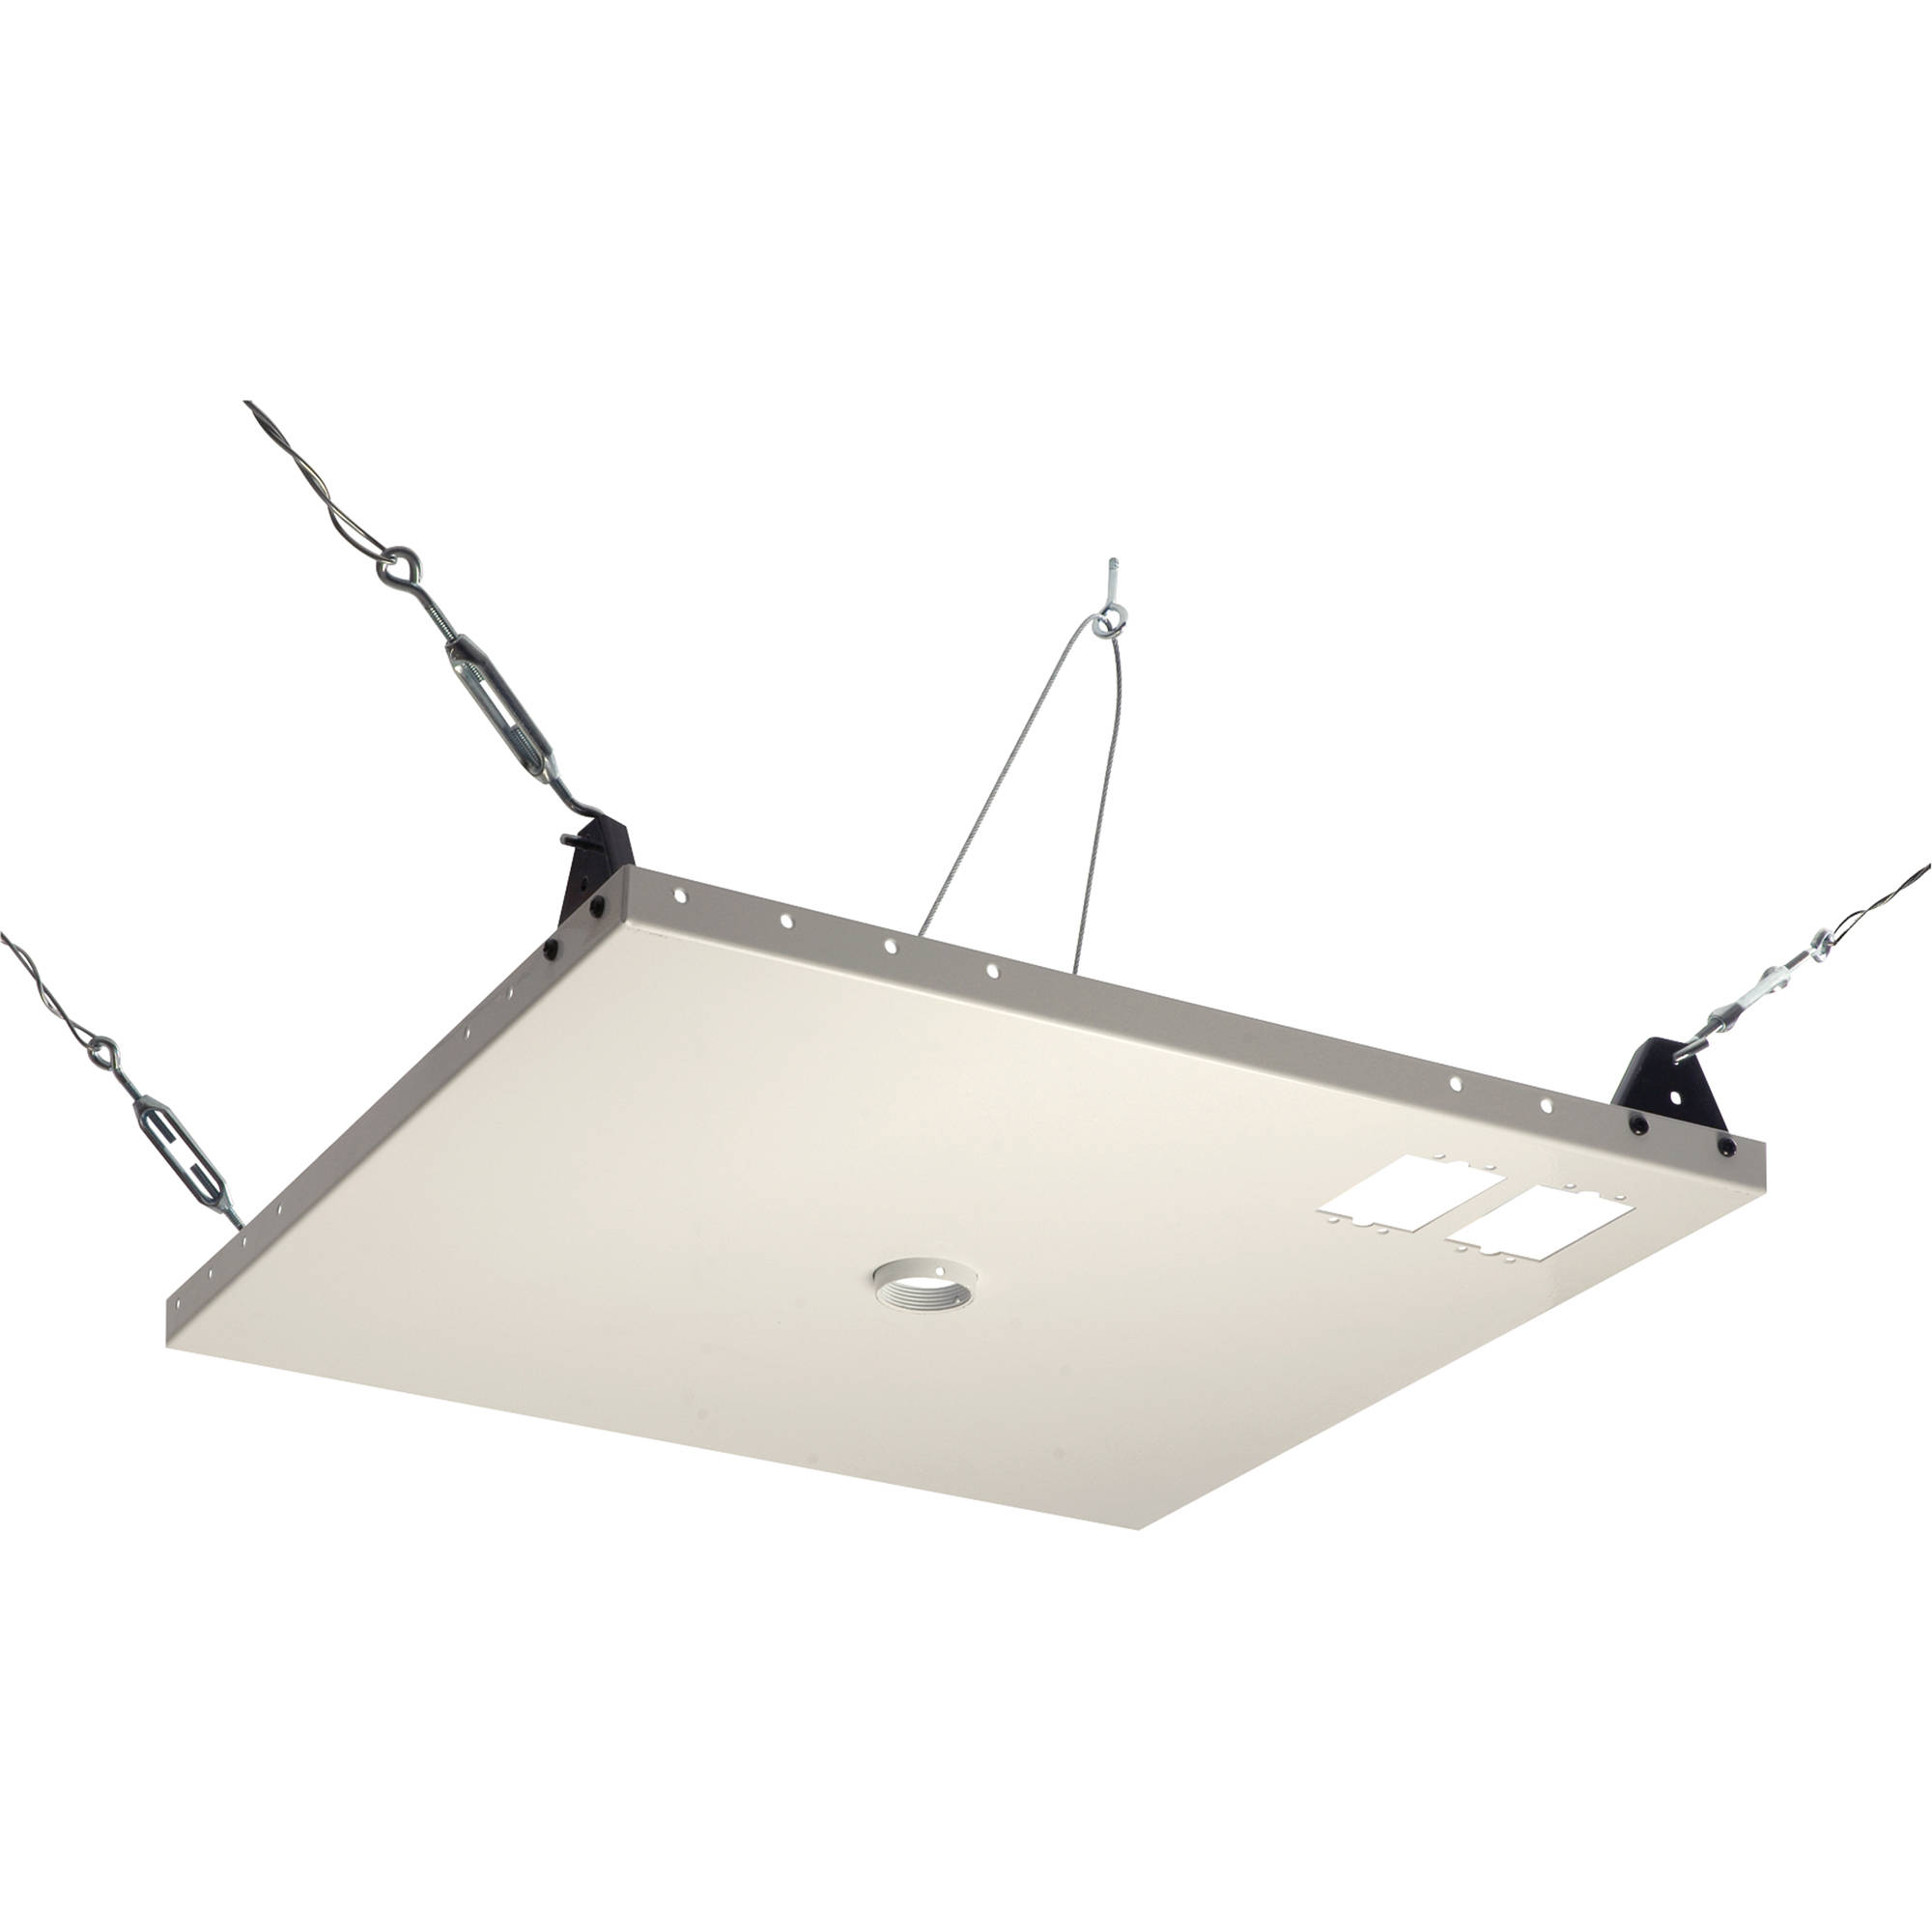 with fits flat or mount projection screen white plate bracket universal vaulted premier installation suspended ceiling drop both adjustable height projector optoma